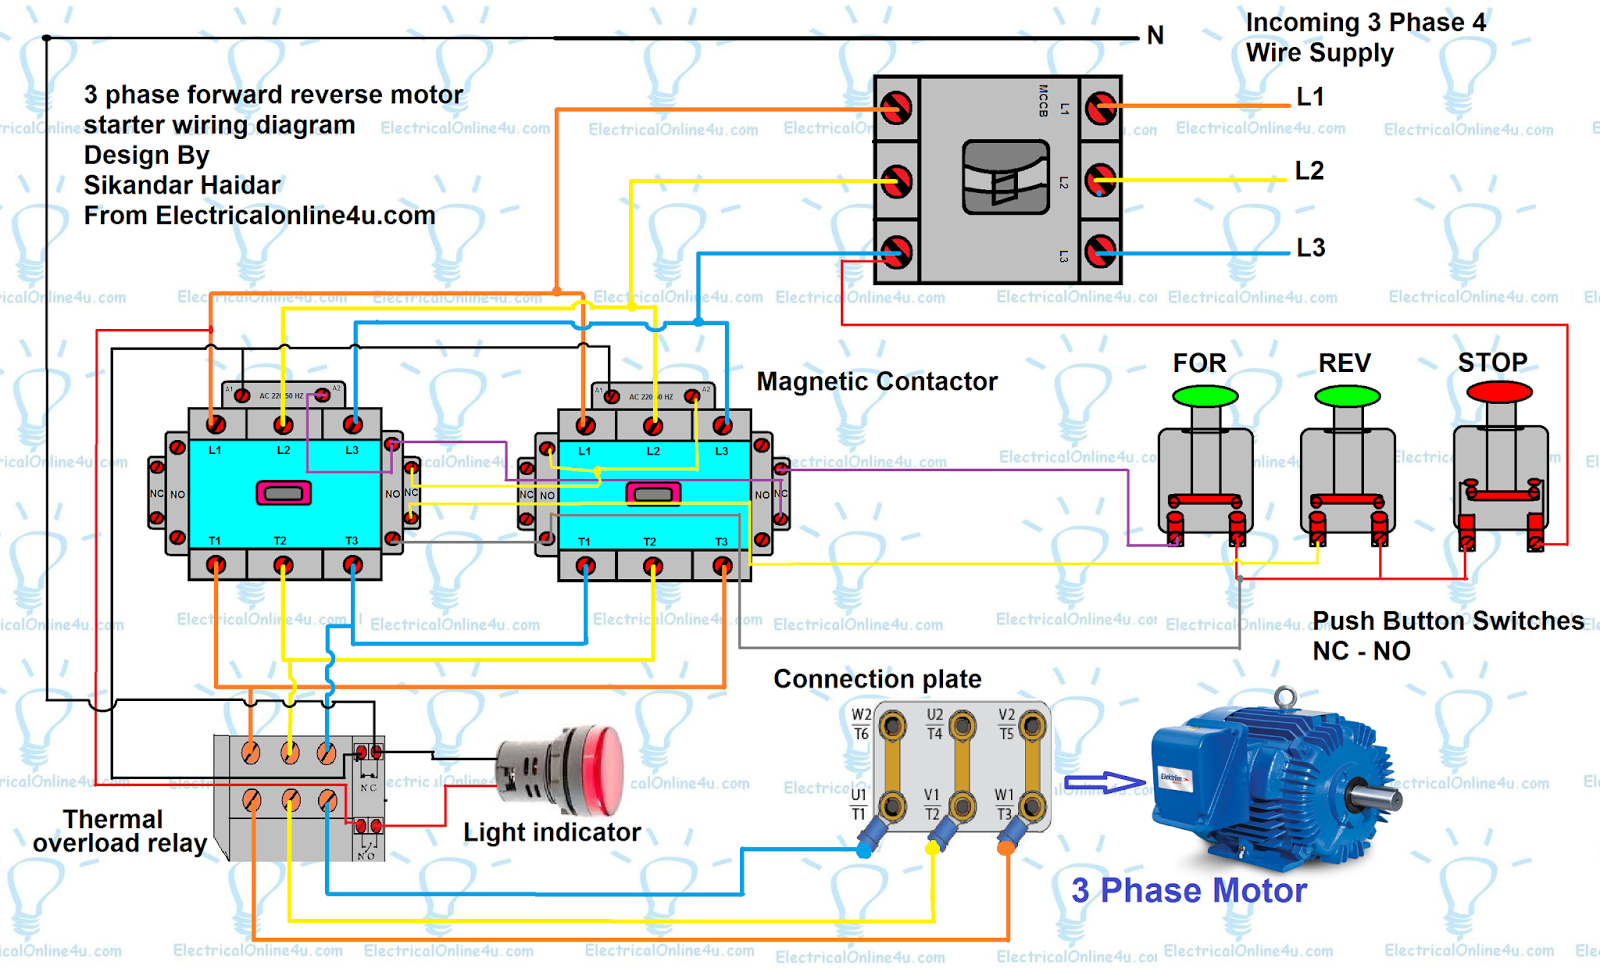 Diagram 3 Phase Motor Control And Power Diagram Full Version Hd Quality Power Diagram Stvfuse8449 Itcmolari It